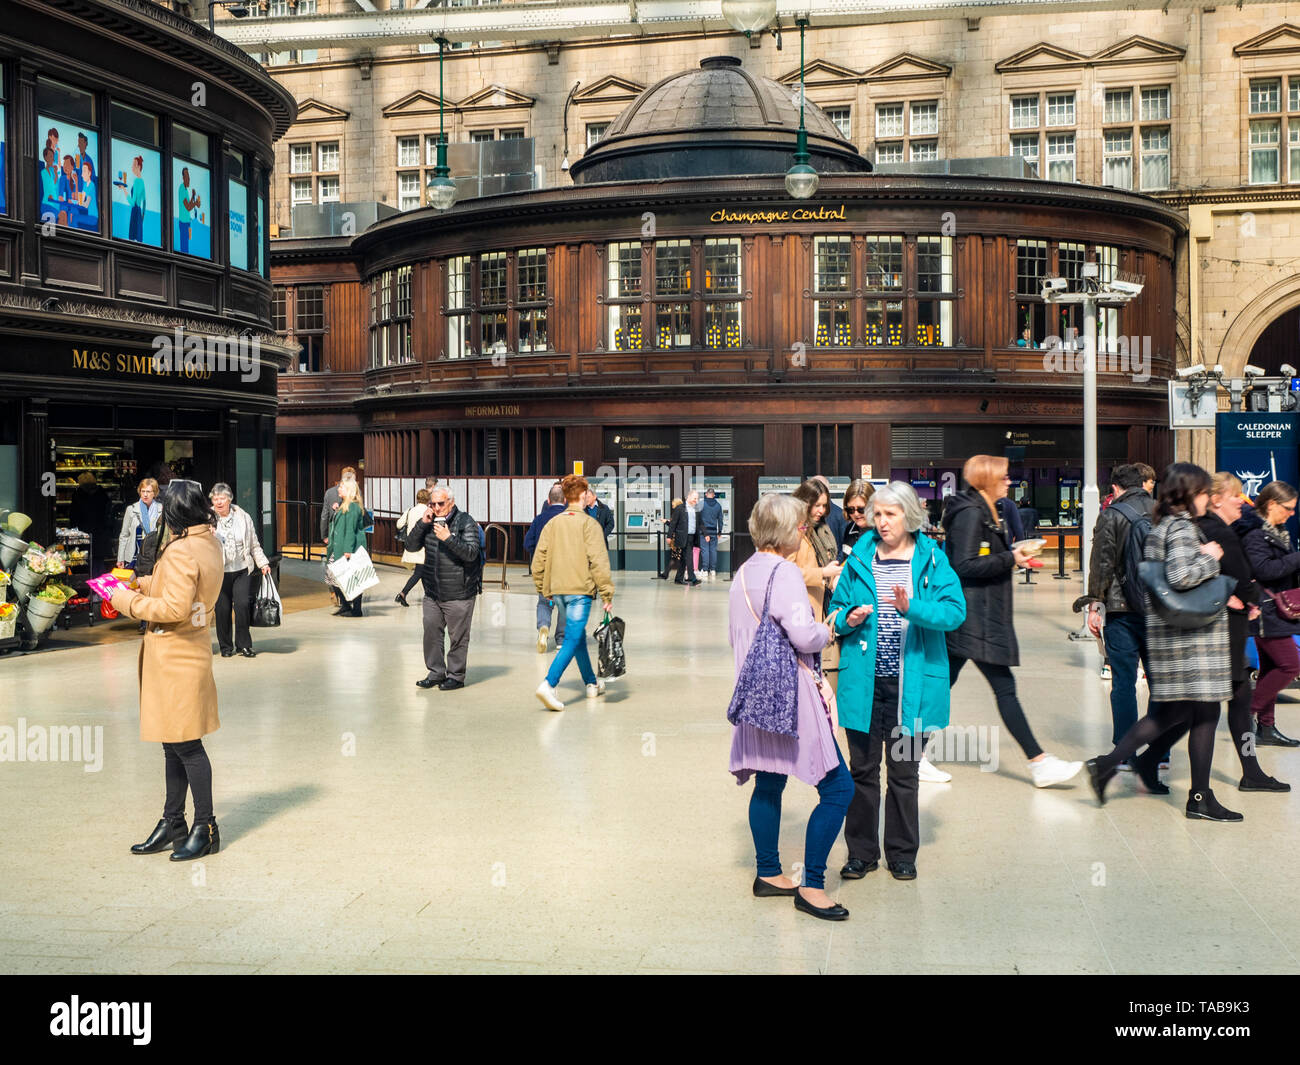 The Grand Central Hotel, Glasgow Central Station, Scotland, United Kingdom - Stock Image